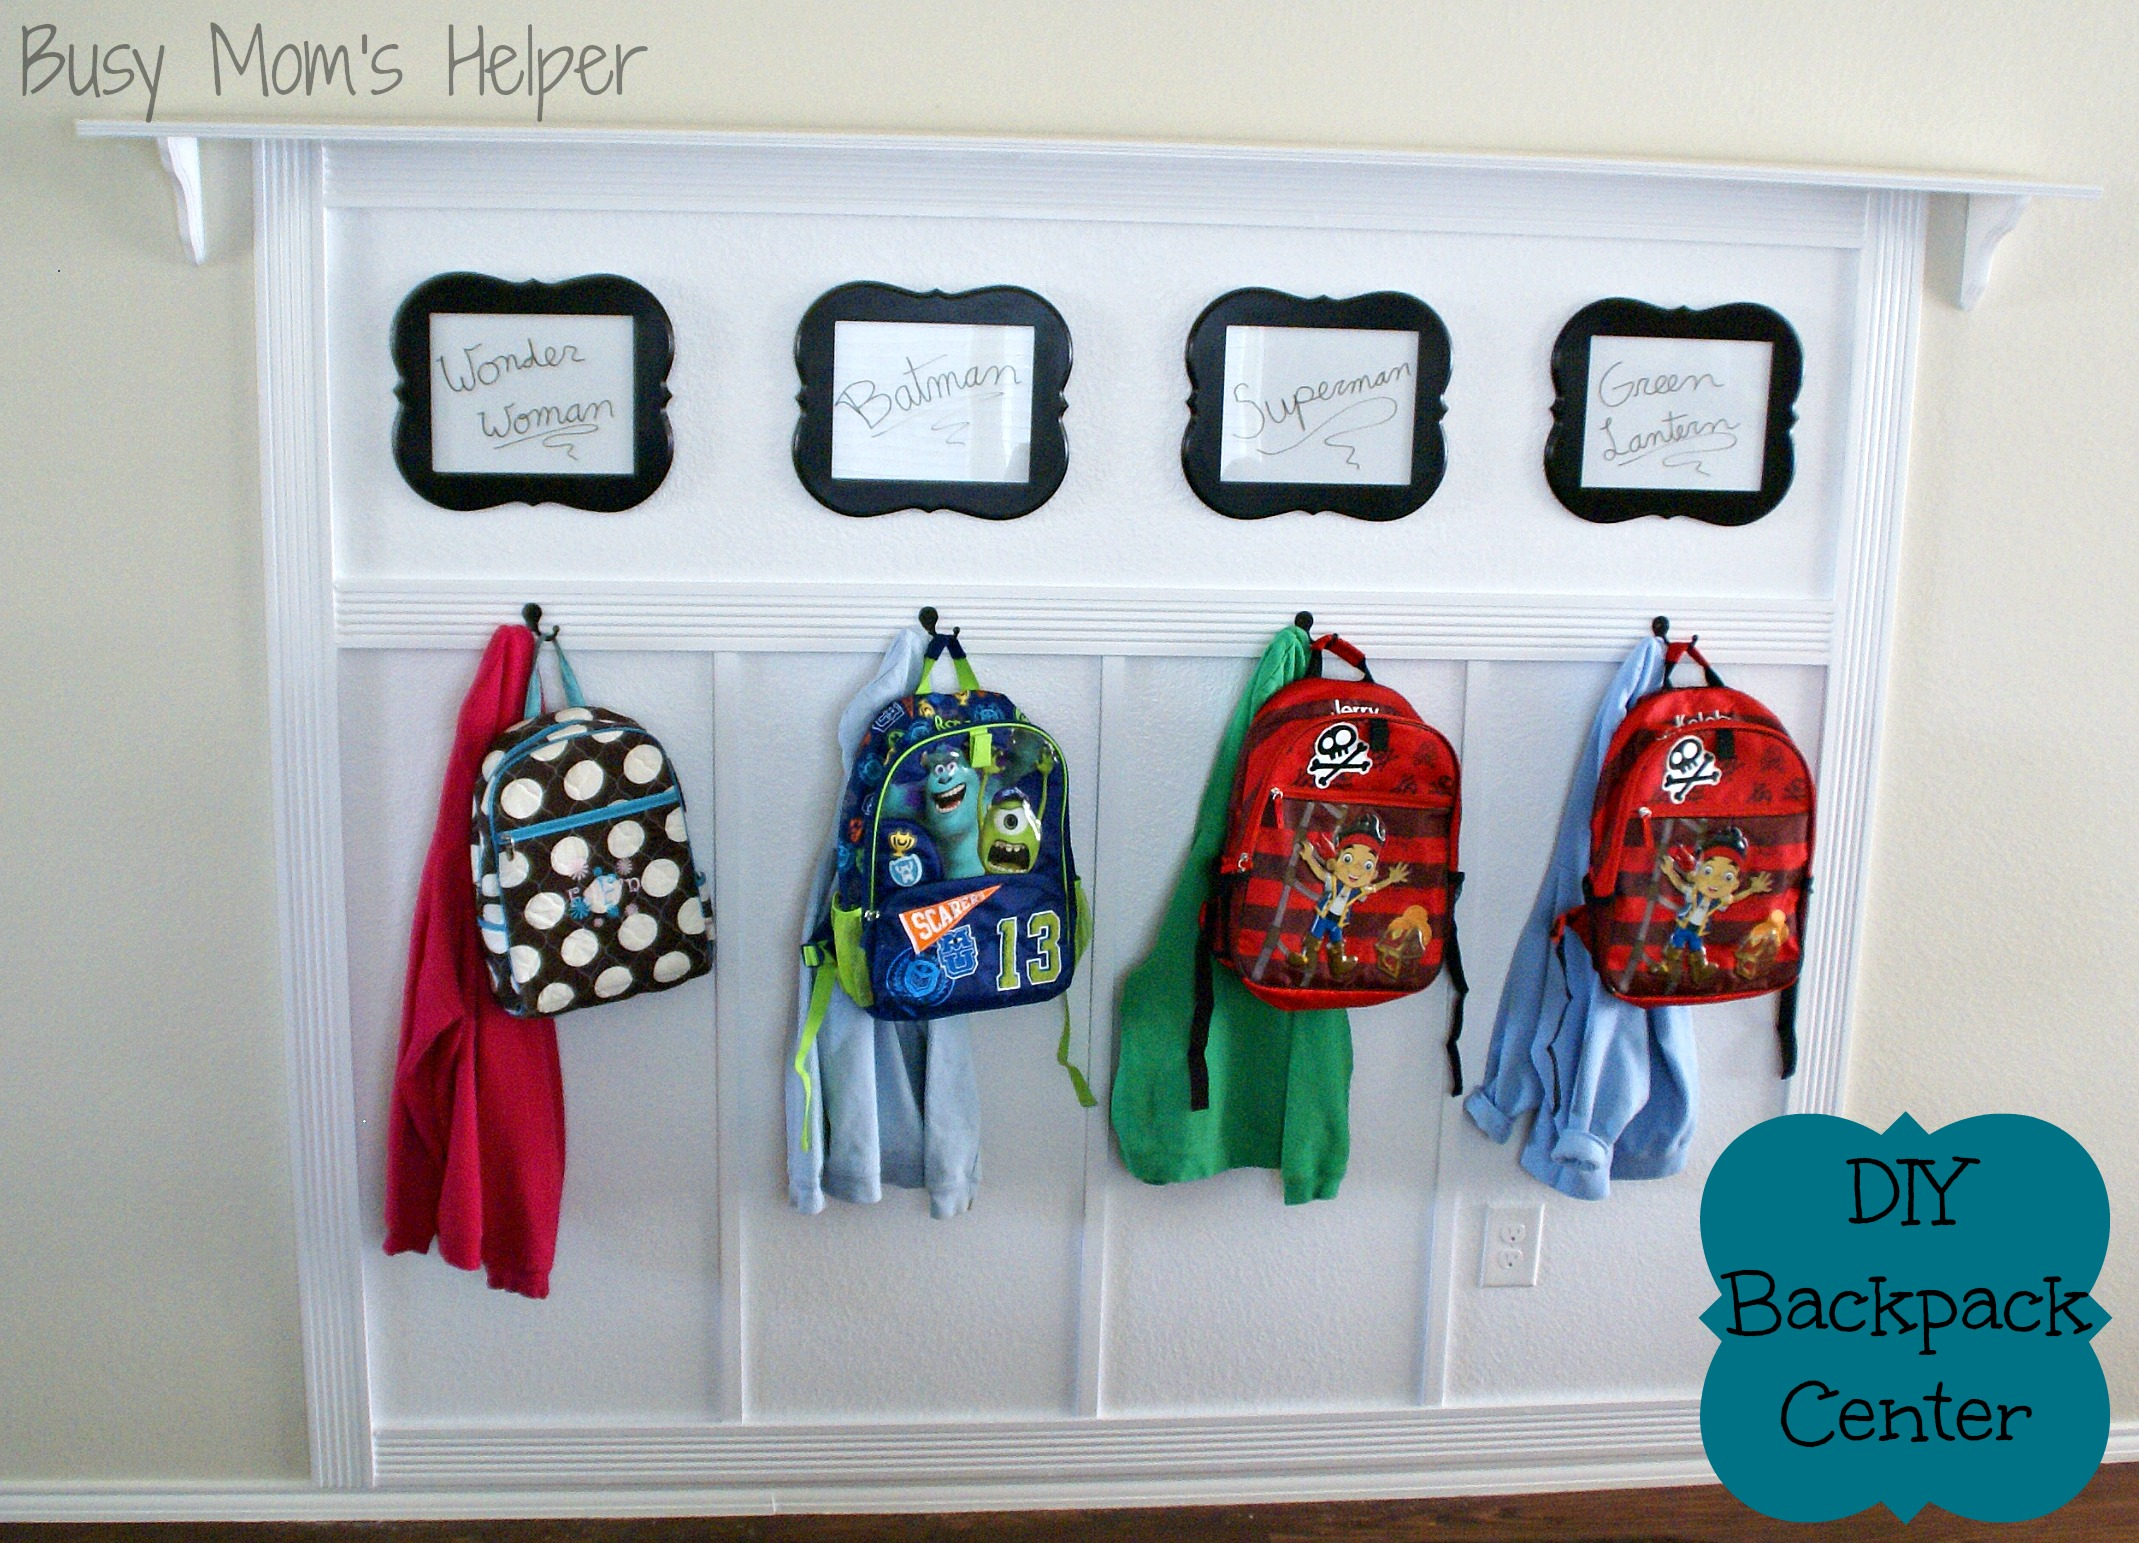 DIY Backpack Center / Busy Mom's Helper